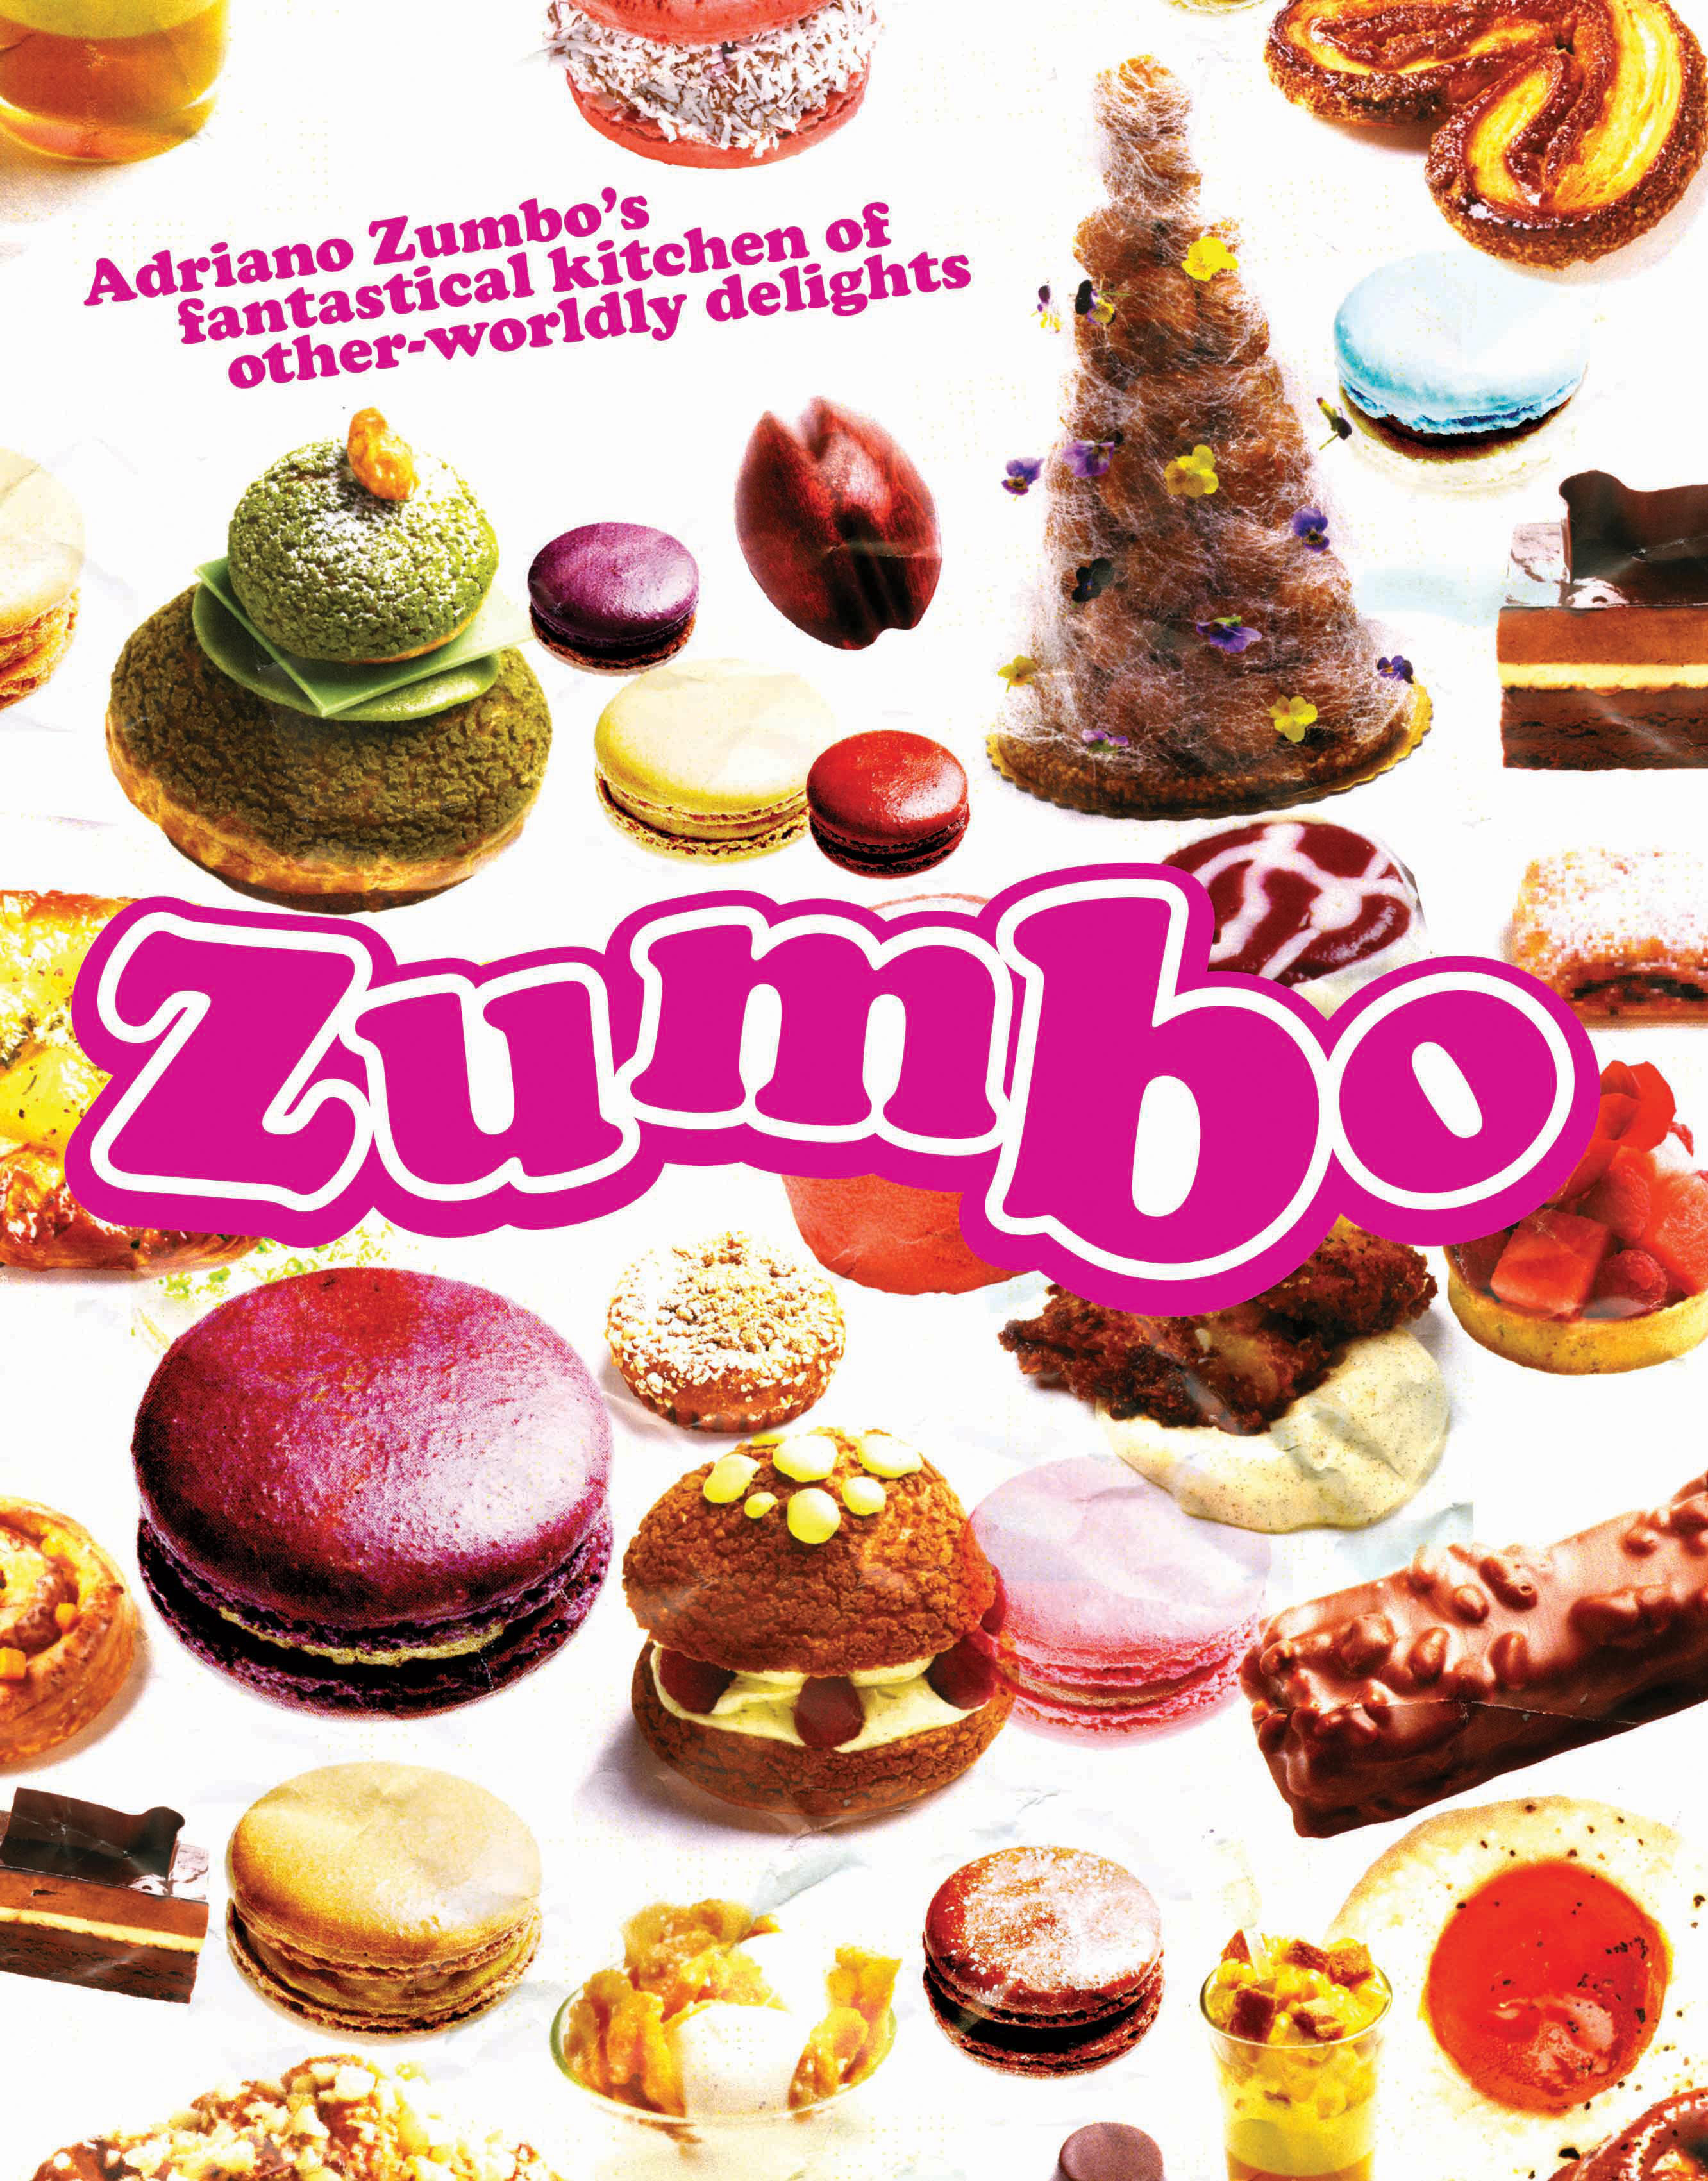 Zumbo Pastries Adriano Zumbo S Fantastical Kitchen Of Other Worldly Delights